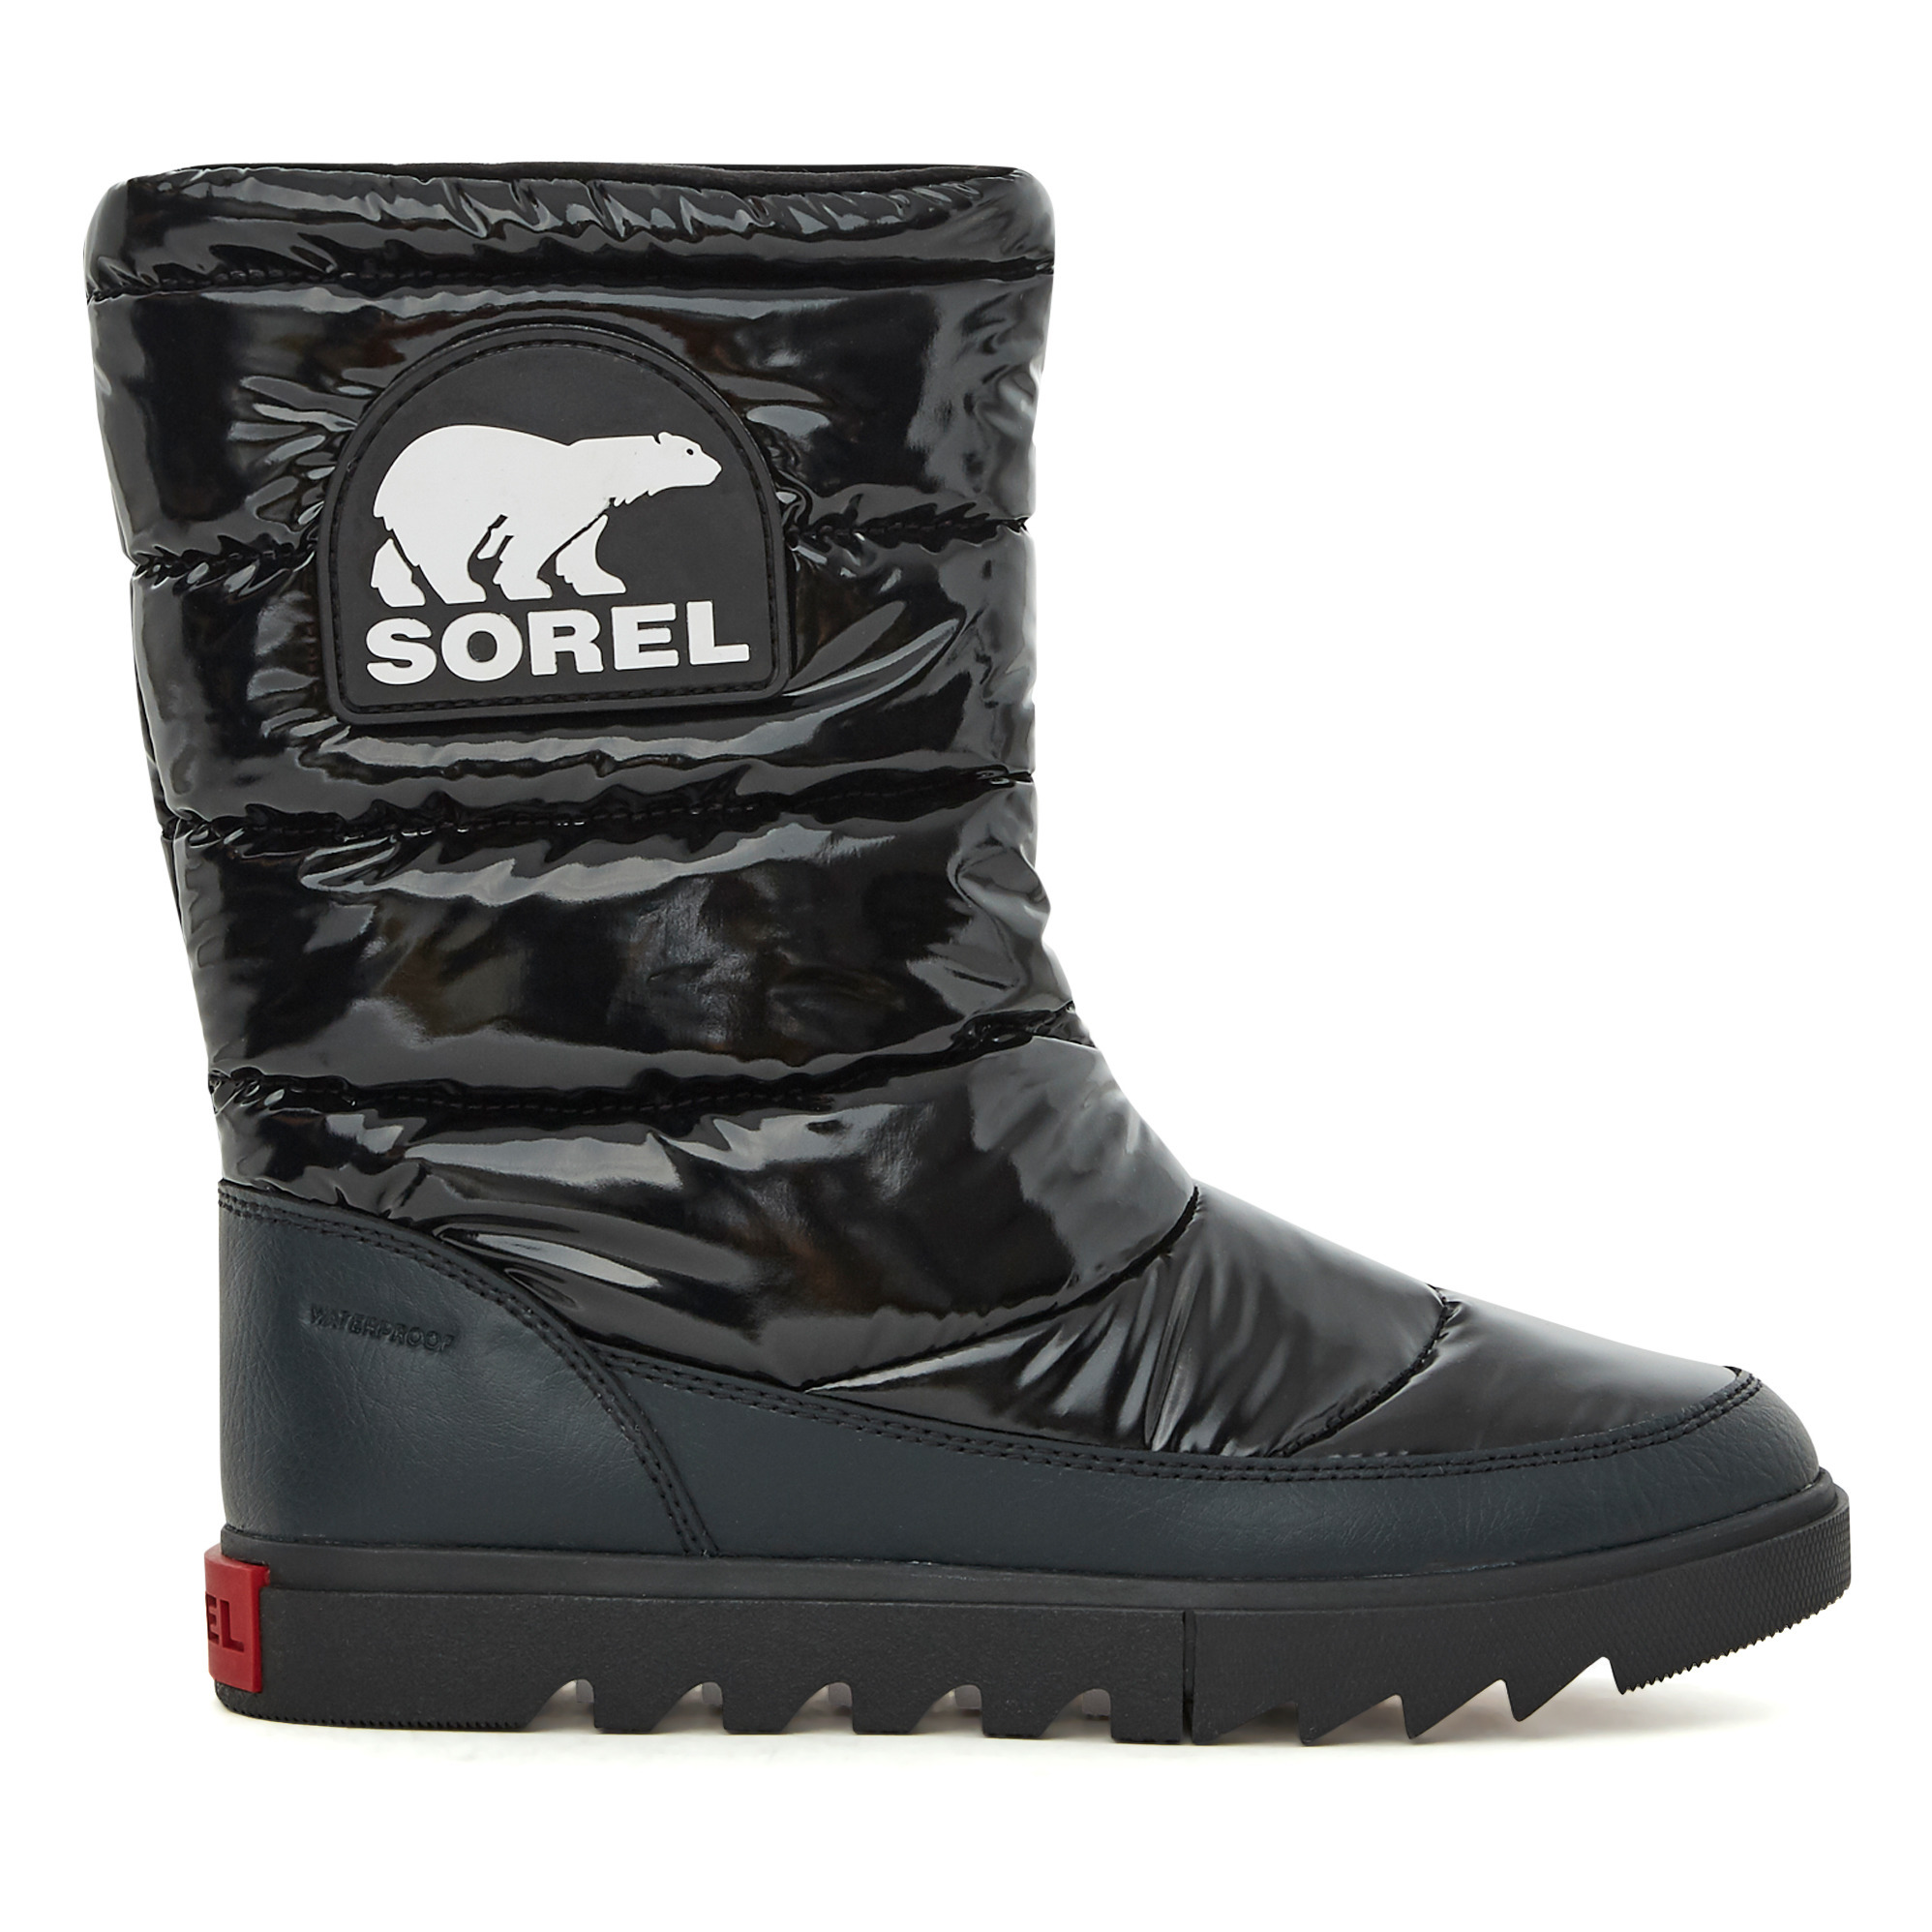 Joan Of Arctic Next Lite Mid Puffy Boots - Women's Collection